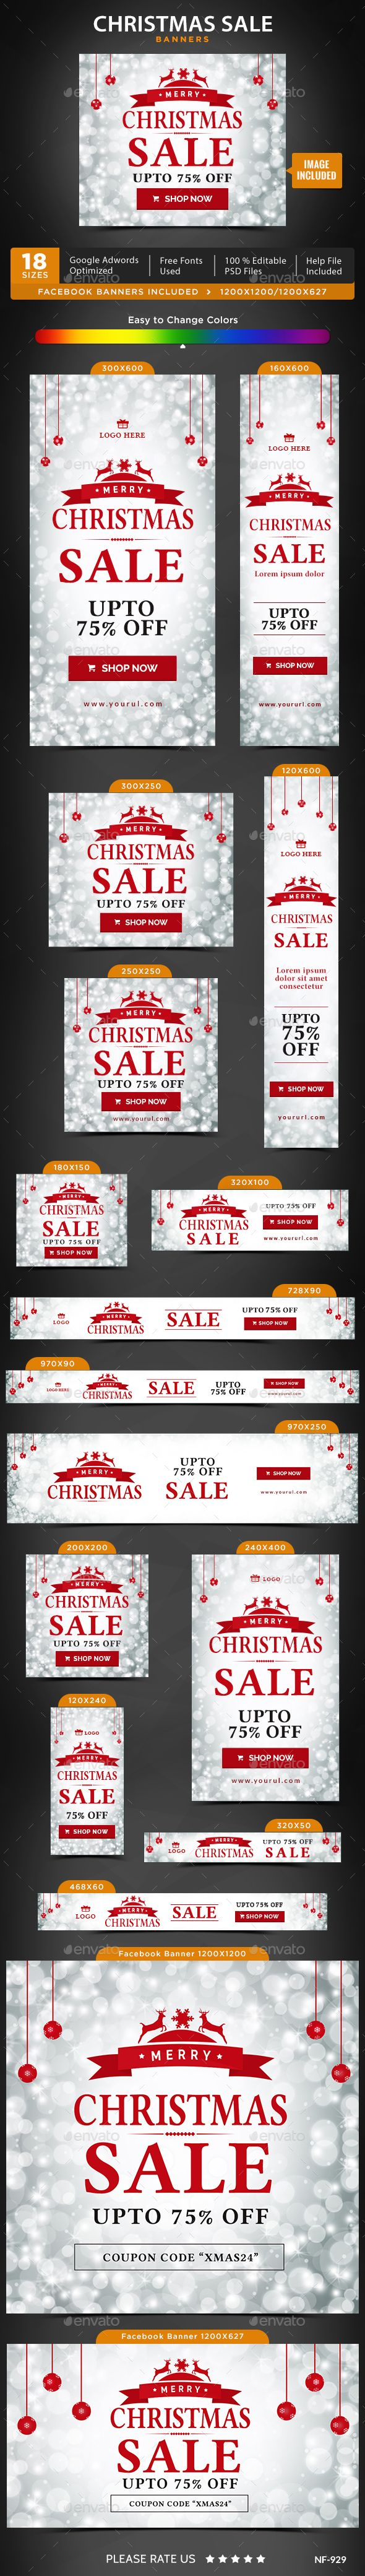 Christmas Sale #Banners - Banners & Ads Web #Elements #Christmas #NewYears…